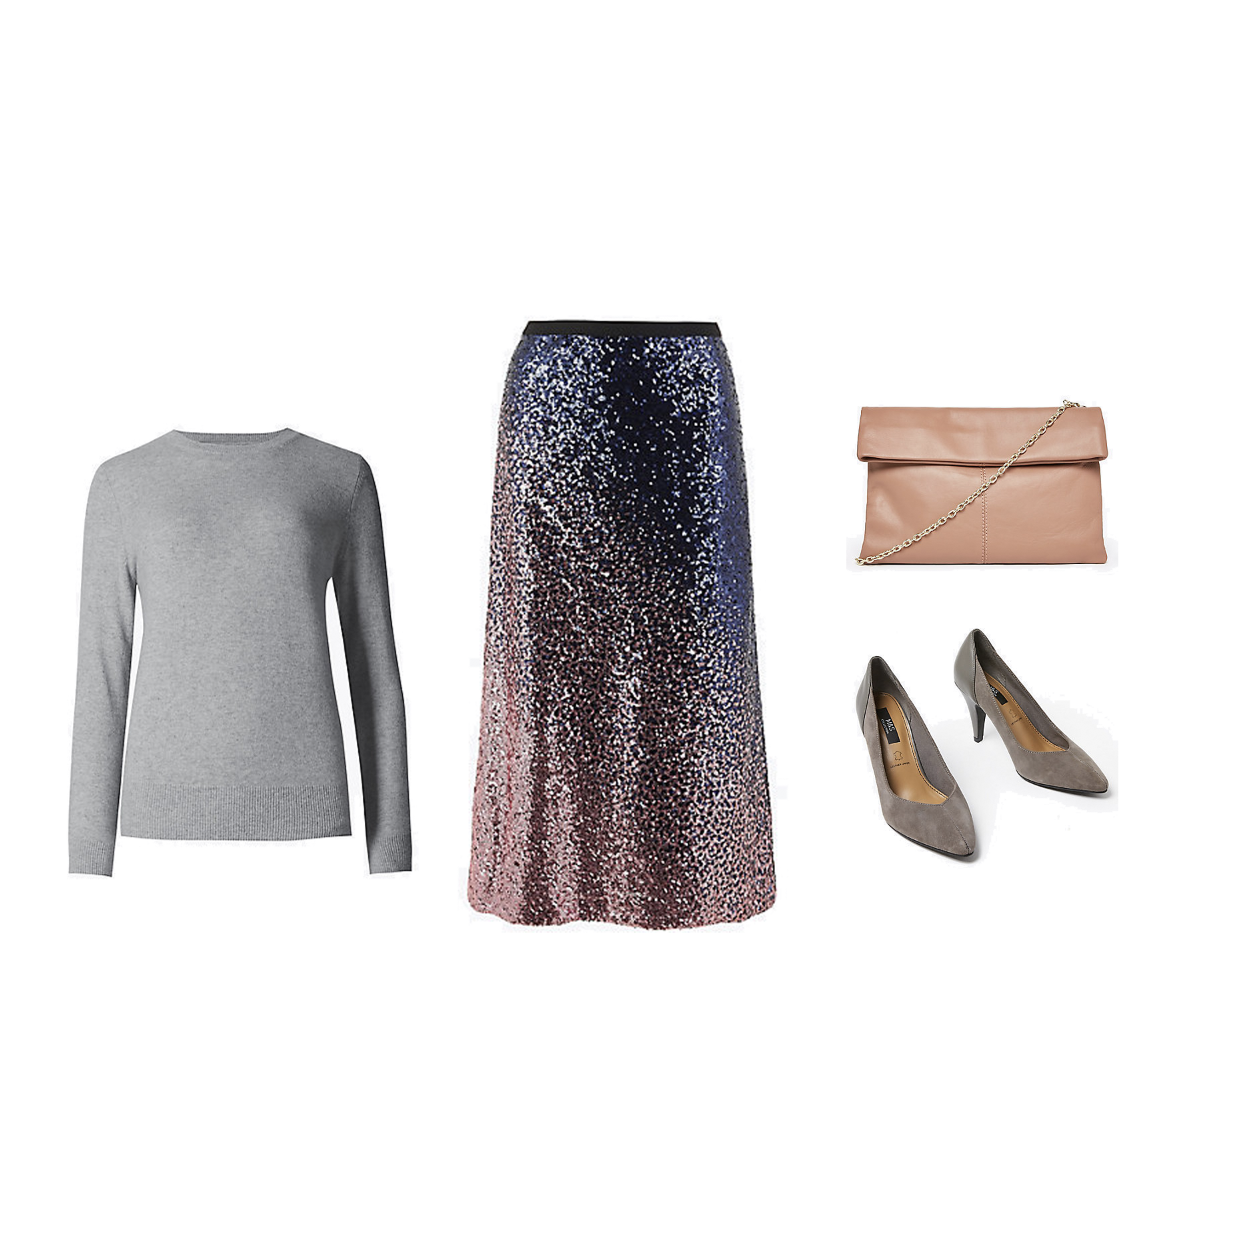 my midlife fashion, marks and Spencer party wear, party wear, marks and Spencer pure cashmere round neck jumper, marks and Spencer ombre sequin slip midi skirt, marks and Spencer leather foldover clutch bag, marks and Spencer suede contrast back court shoes